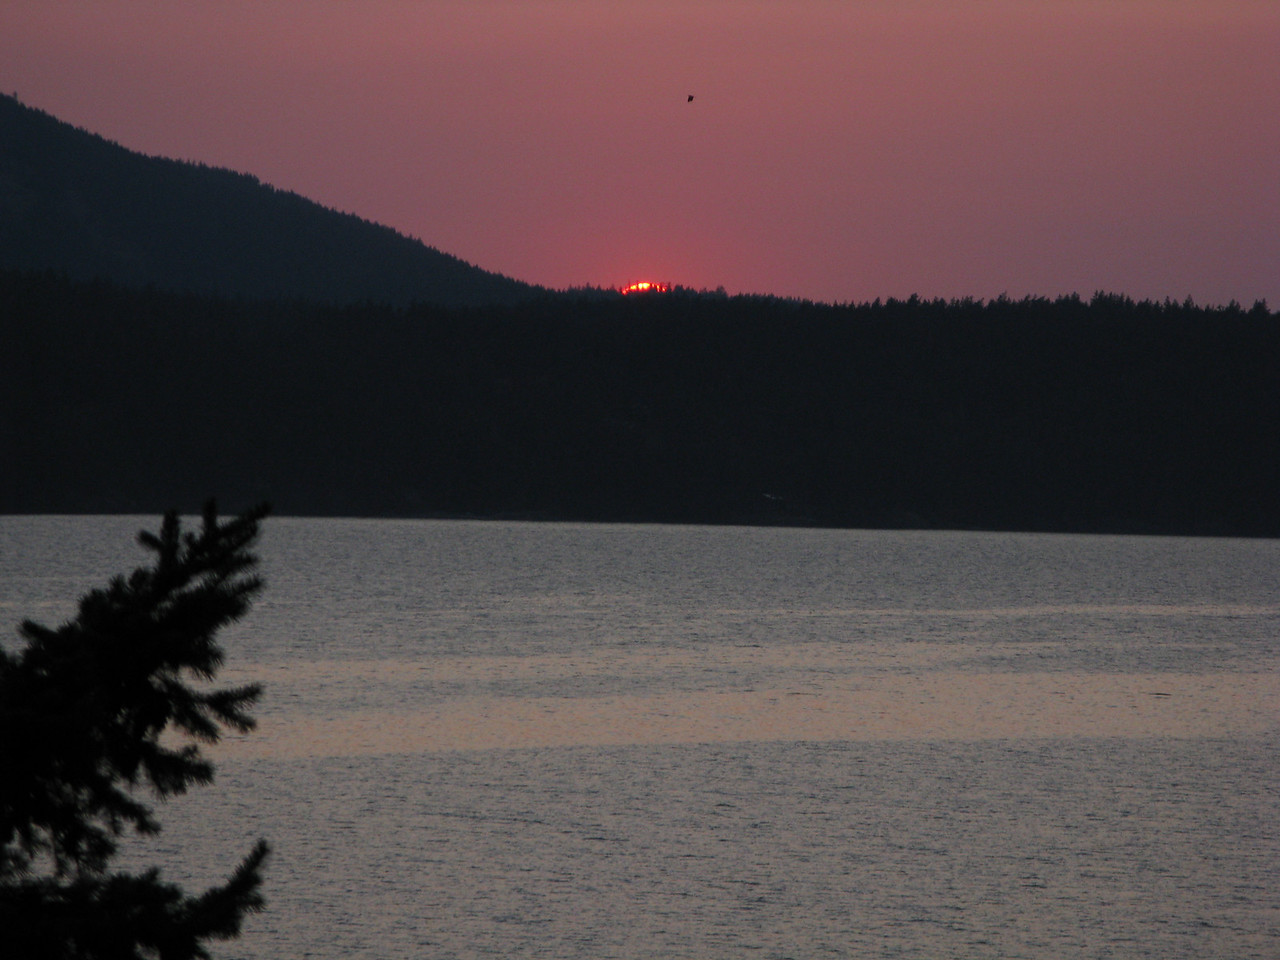 Saturday evening, we watched the sun set over East Sound from Rosario.  This was our last night in the islands.